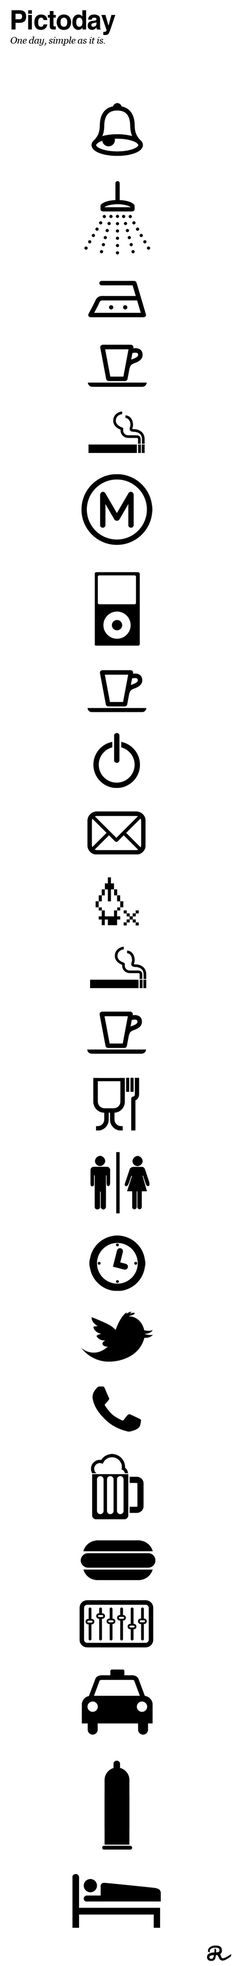 Pictoday on Behance #icons #pictograms #day